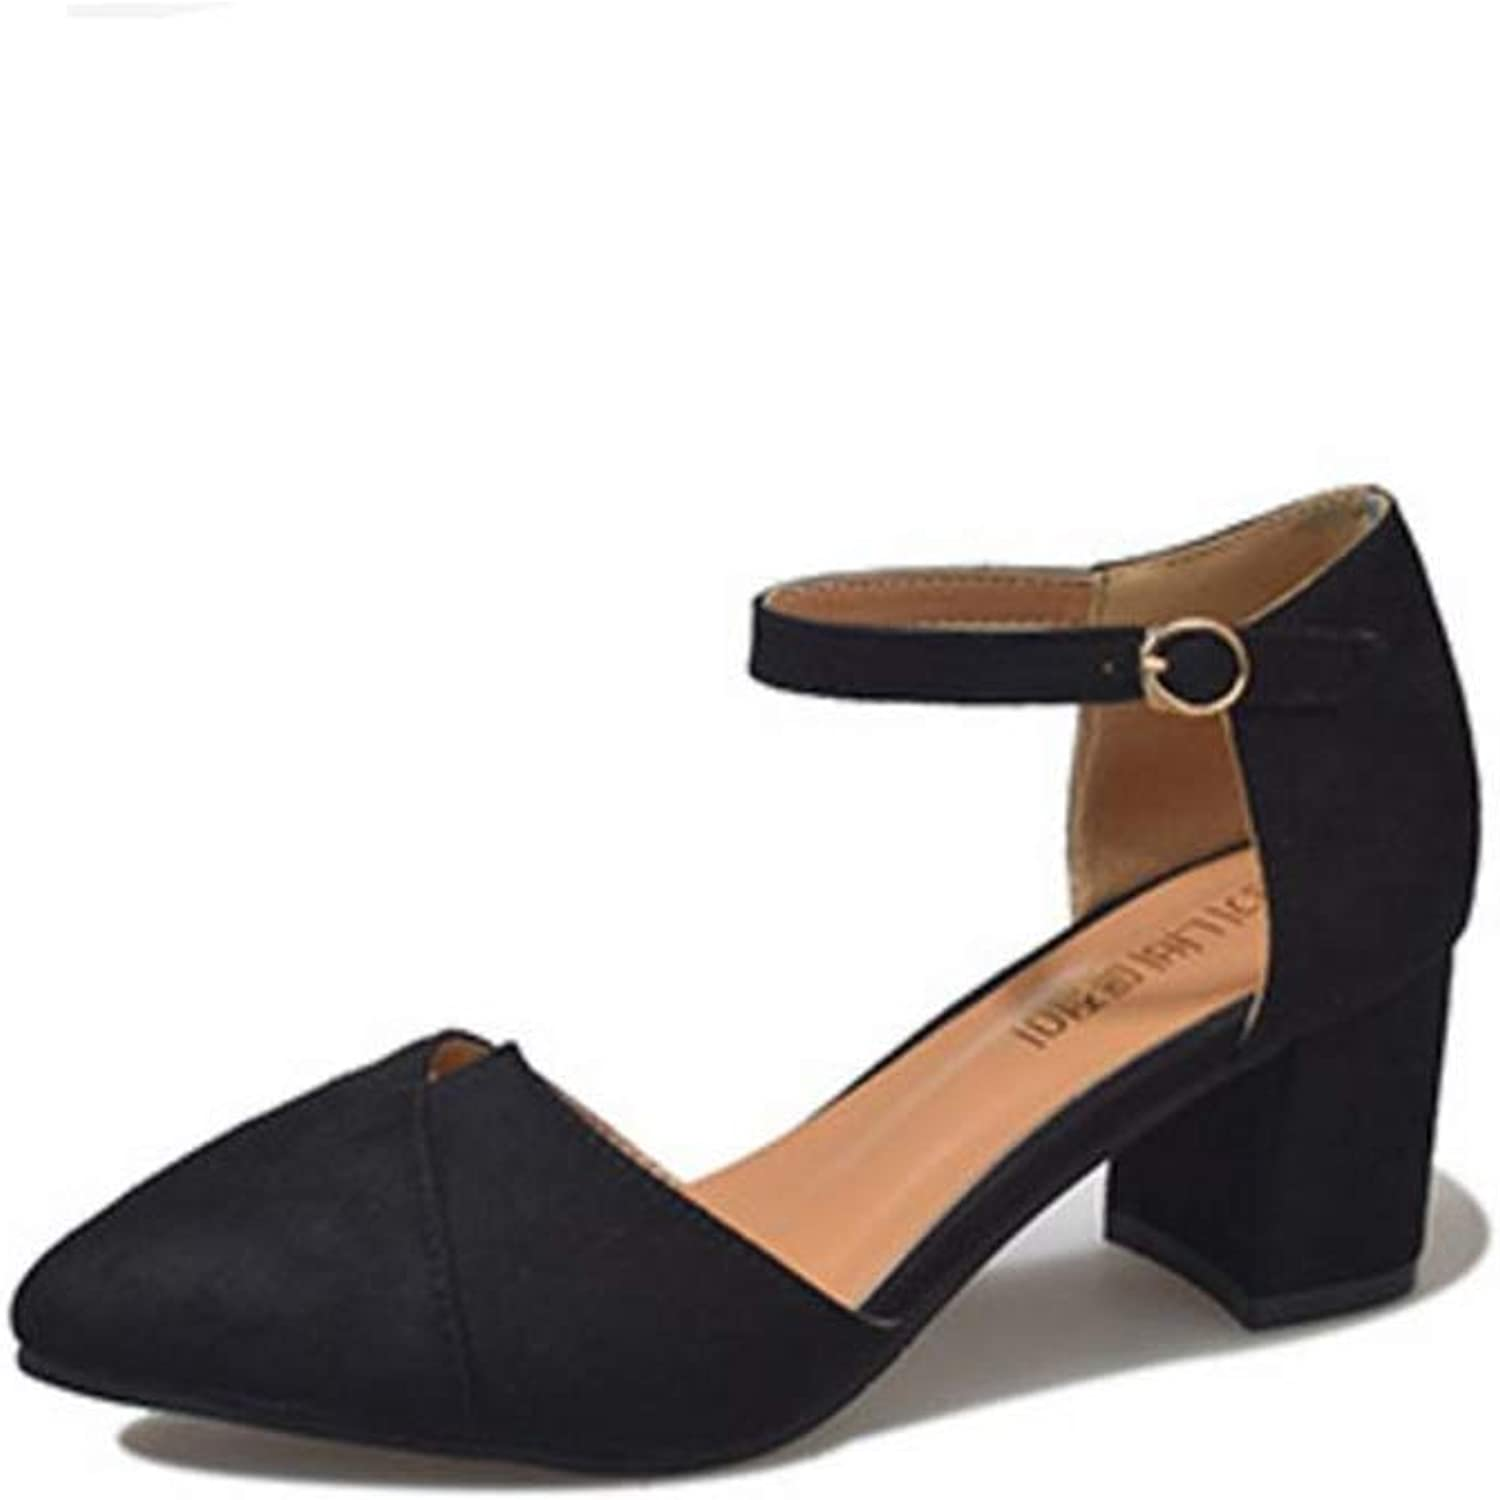 Gusha Women's Elegant Heel shoes Fashion Pointed Toe Pumps Thick with Sandals